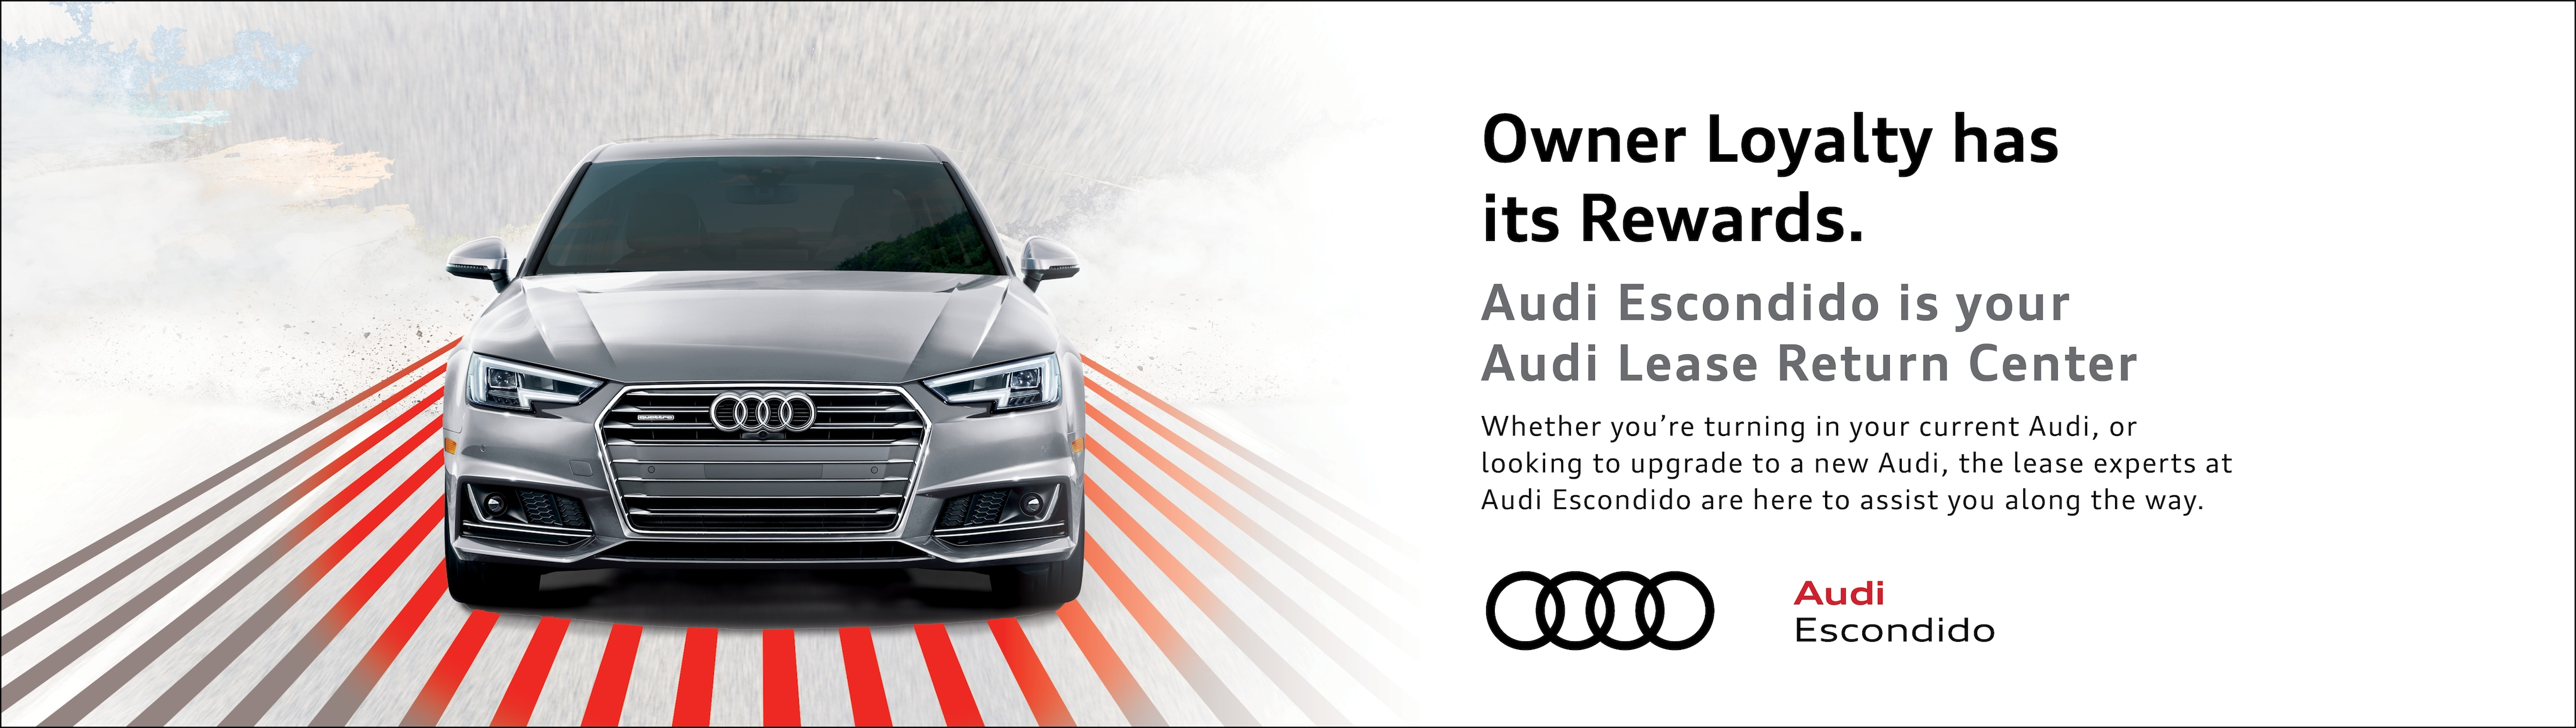 Lease Return Center Audi Escondido Escondido CA - Audi loyalty